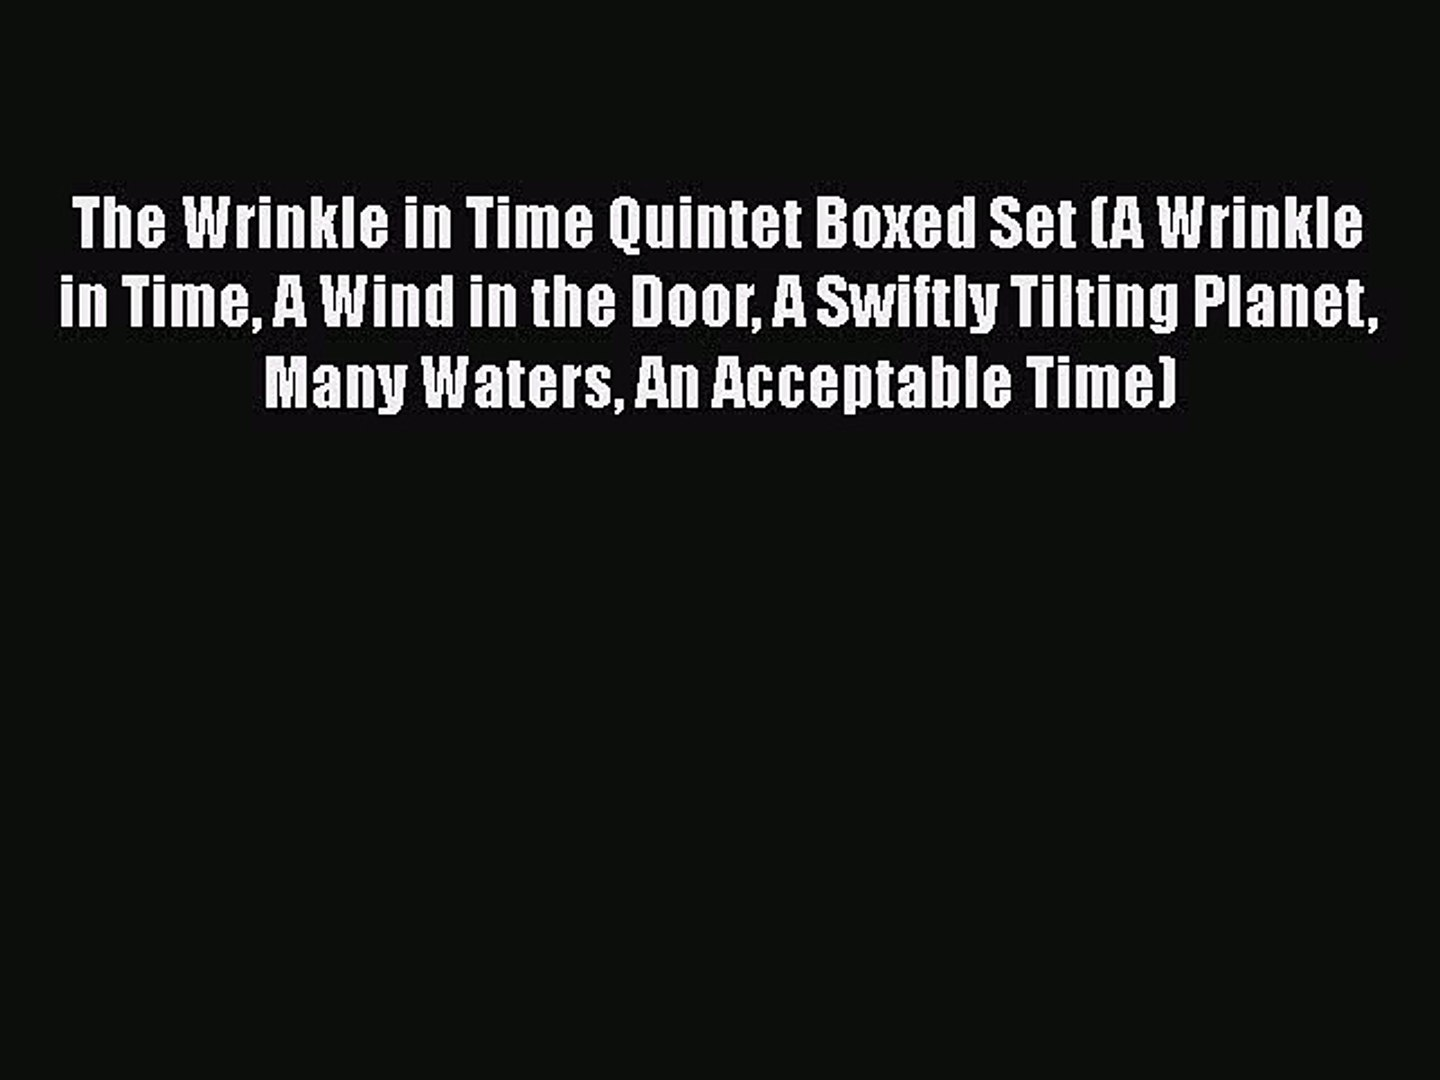 Read Books The Wrinkle in Time Quintet Boxed Set (A Wrinkle in Time A Wind in the Door A Swiftly